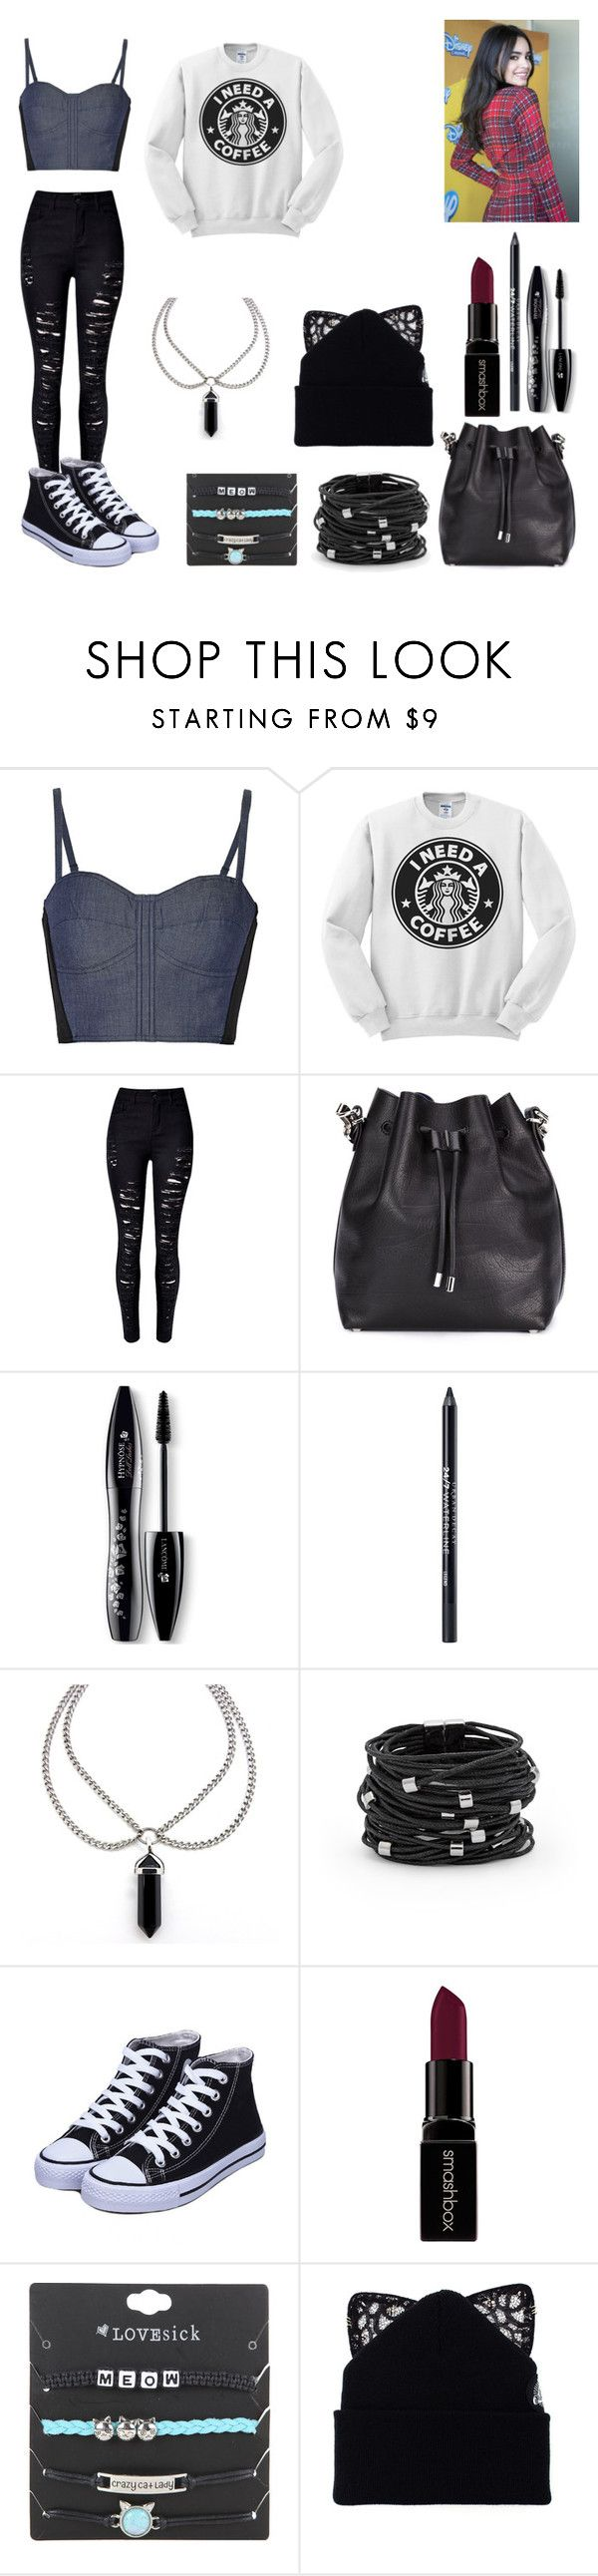 """""""Fanfic- the best frind -1 - Juliete"""" by aninha-gpassis ❤ liked on Polyvore featuring Rebecca Minkoff, WithChic, Proenza Schouler, Lancôme, Urban Decay, Chico's, Smashbox and Silver Spoon Attire"""